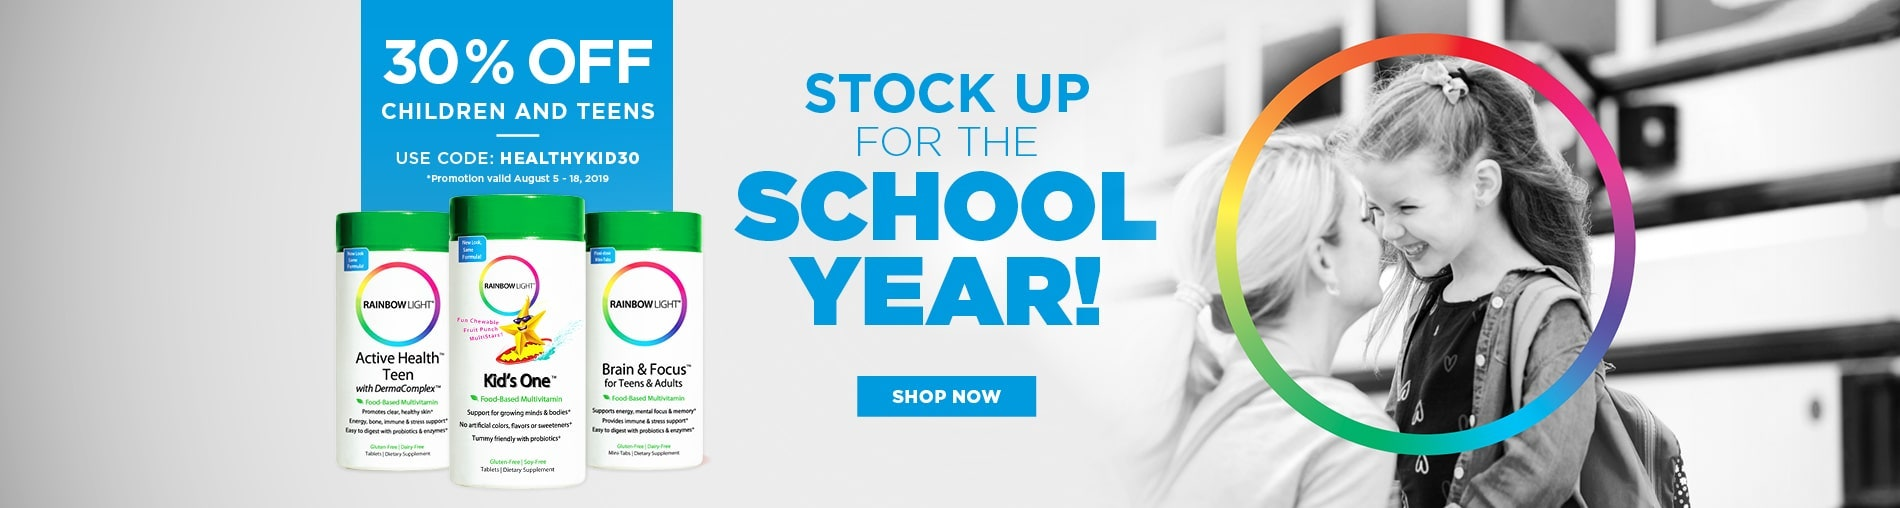 STOCK UP THIS SCHOOL YEAR! USE PROMO CODE: HEALTHYKID30